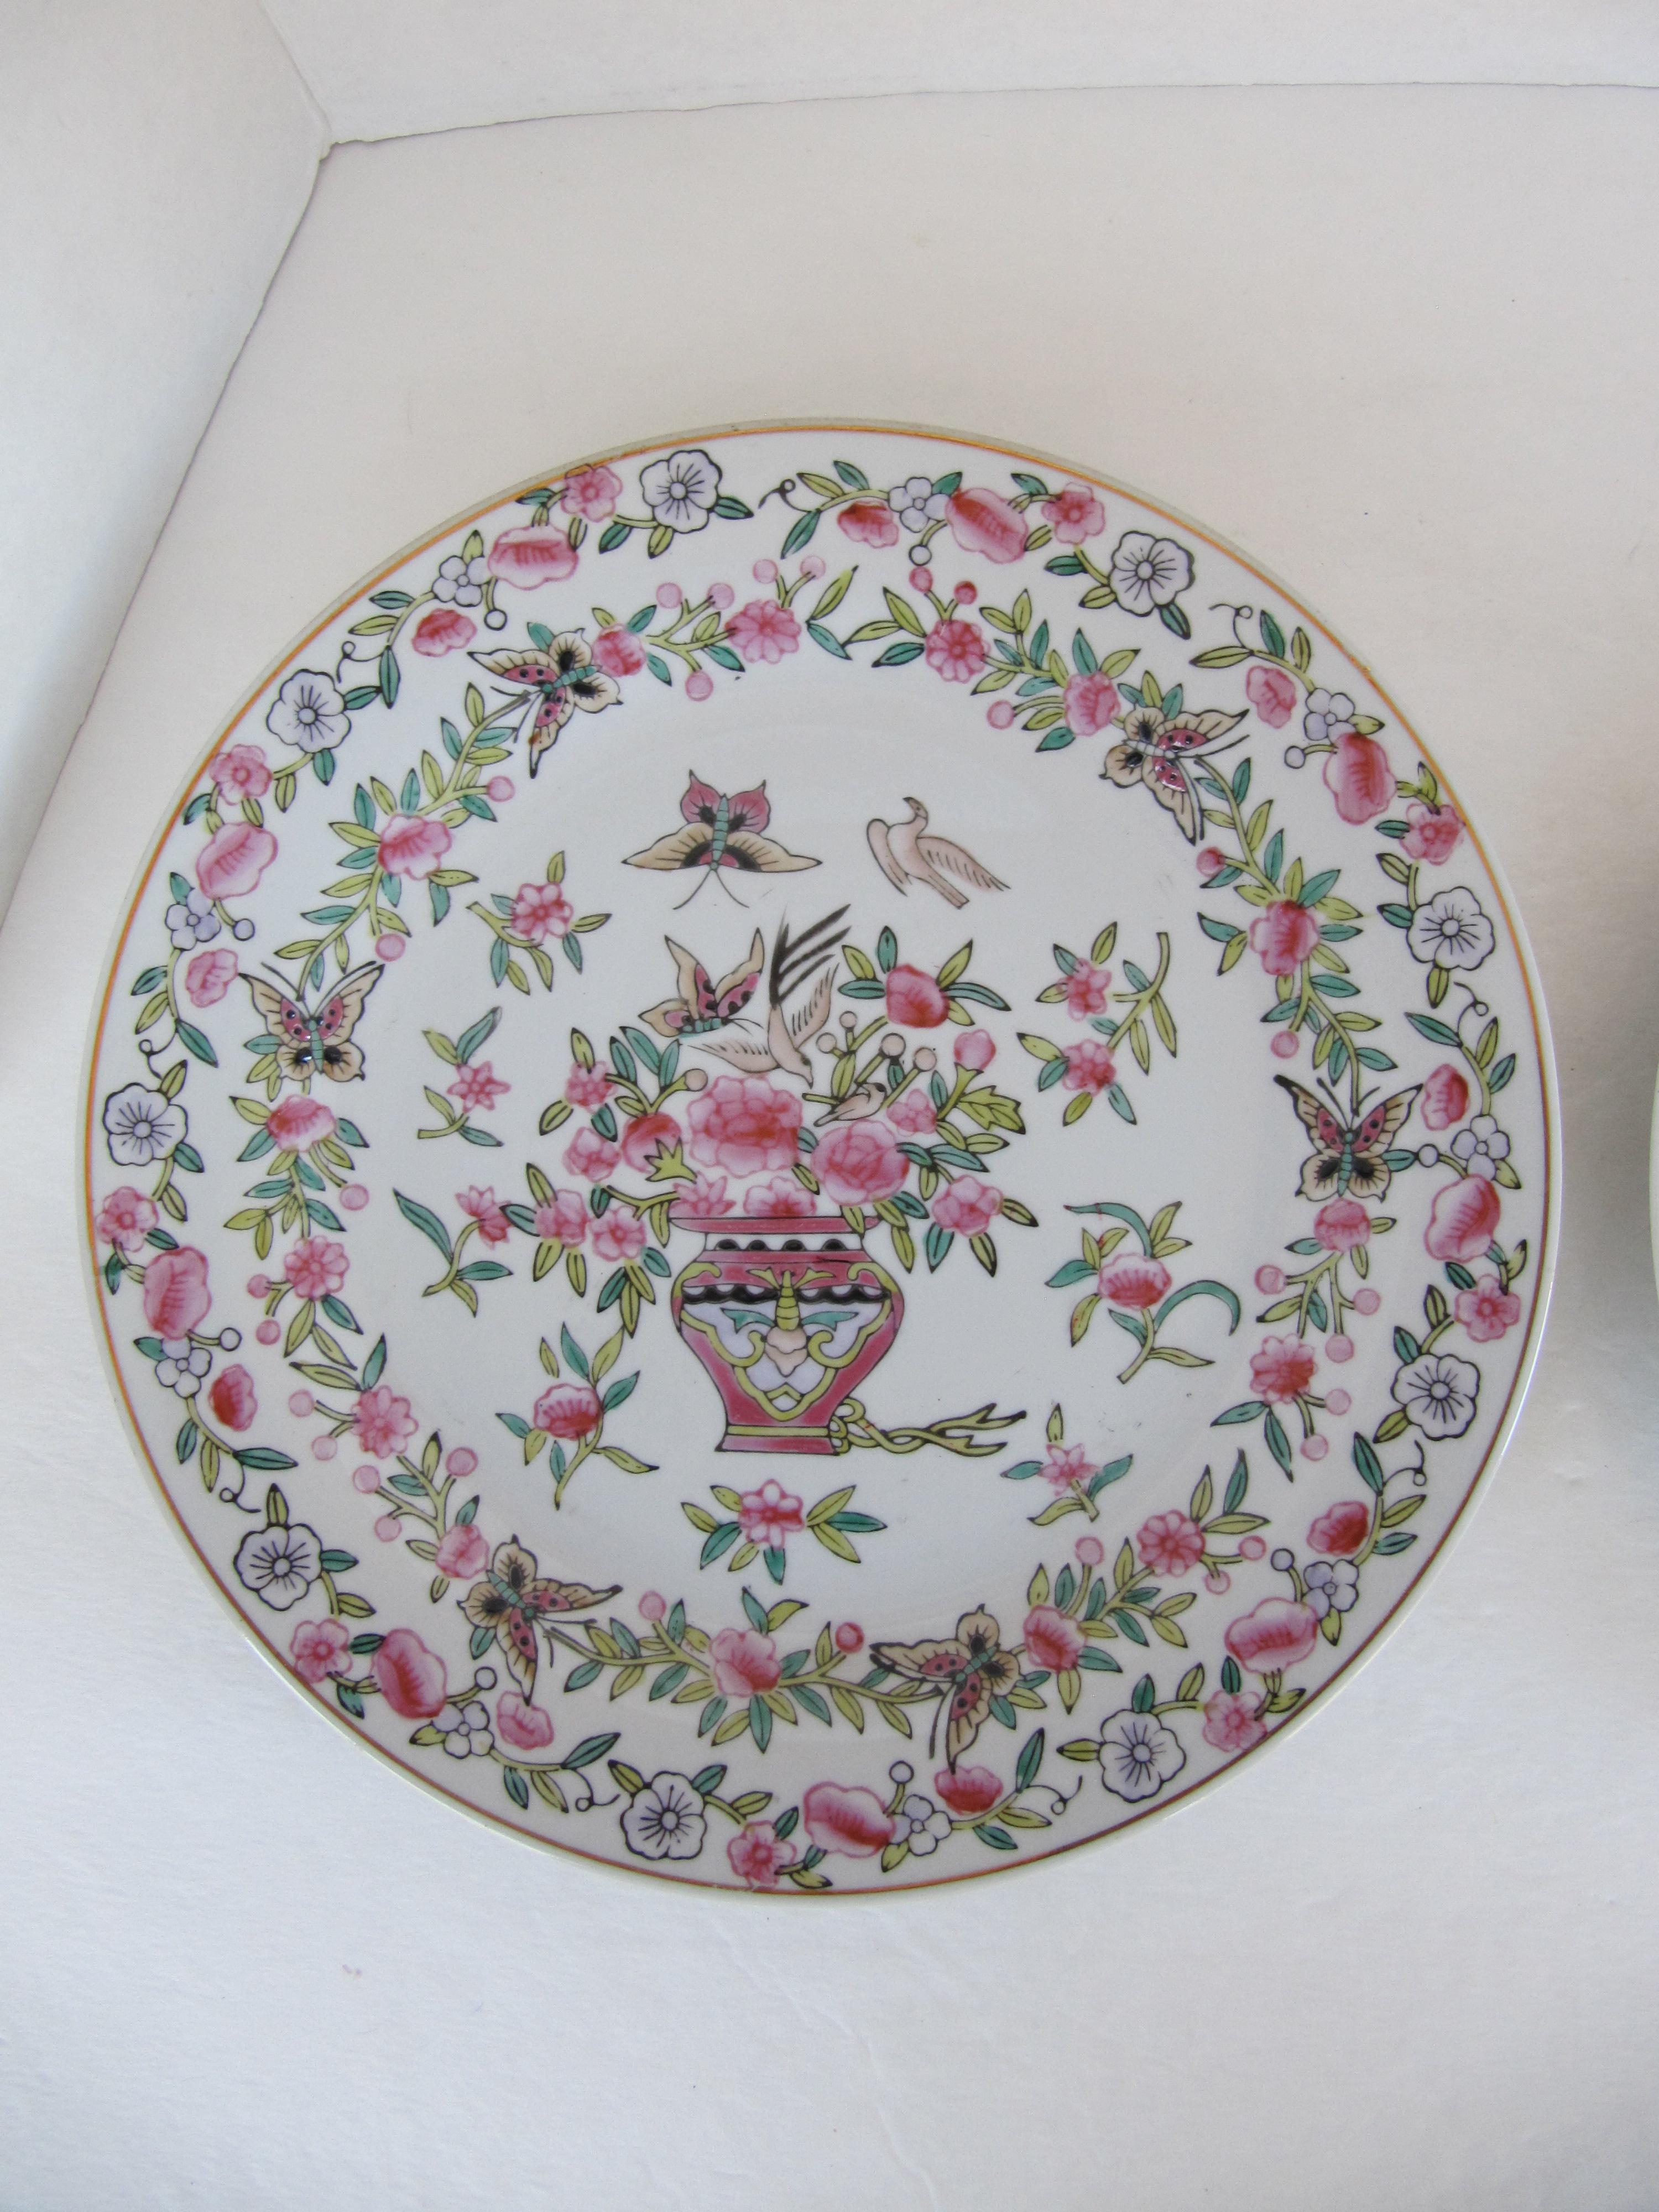 Pink Chinoiserie Decorative Wall Plates - A Pair - Image 2 of 5  sc 1 st  Chairish & Pink Chinoiserie Decorative Wall Plates - A Pair | Chairish